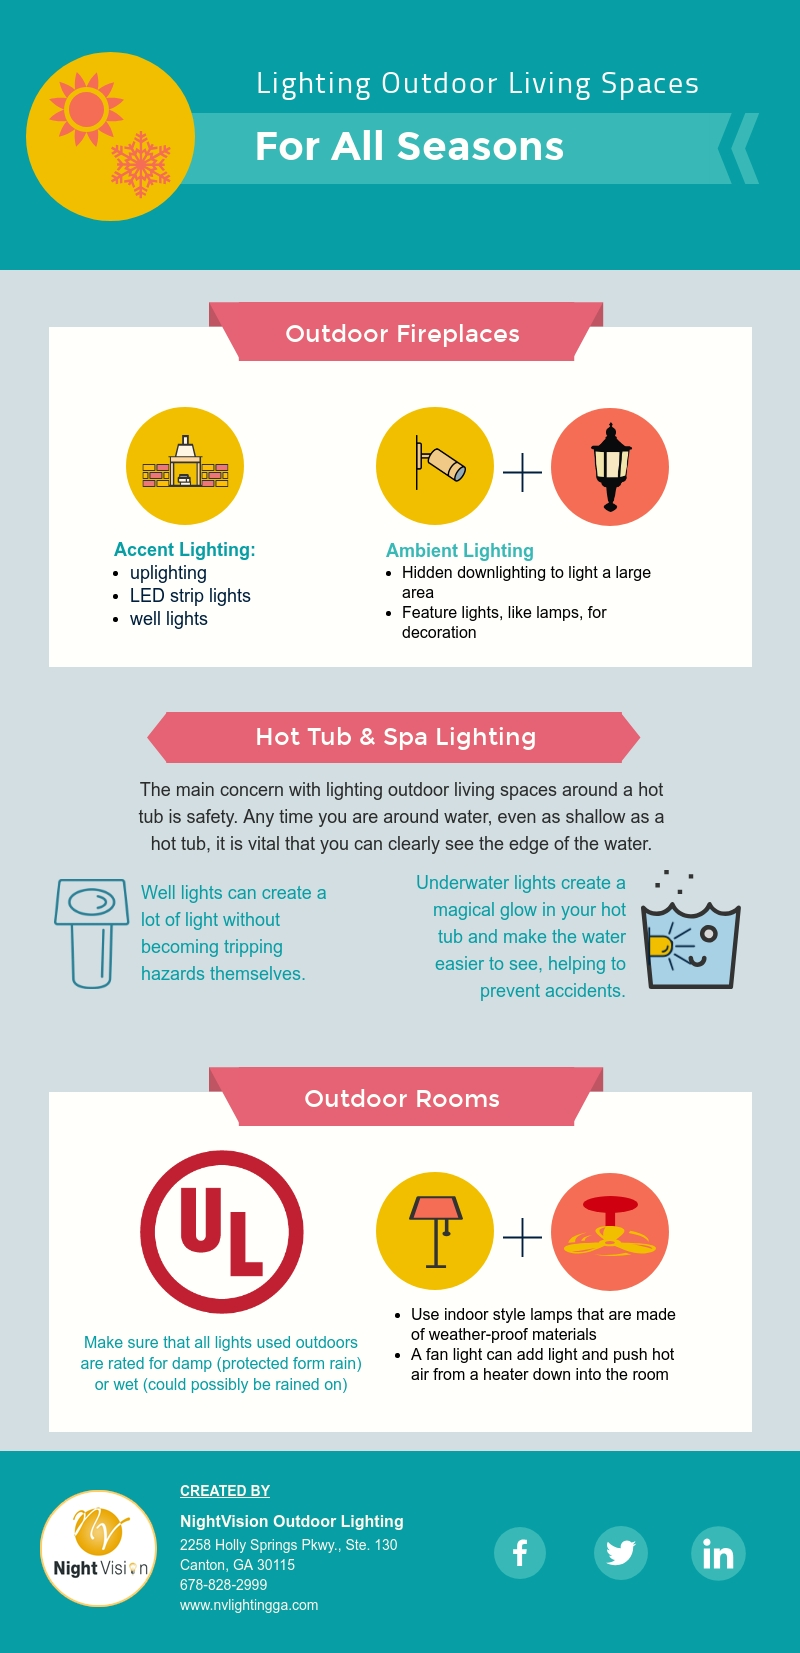 Lighting Outdoor Living Spaces for All Seasons [infographic]